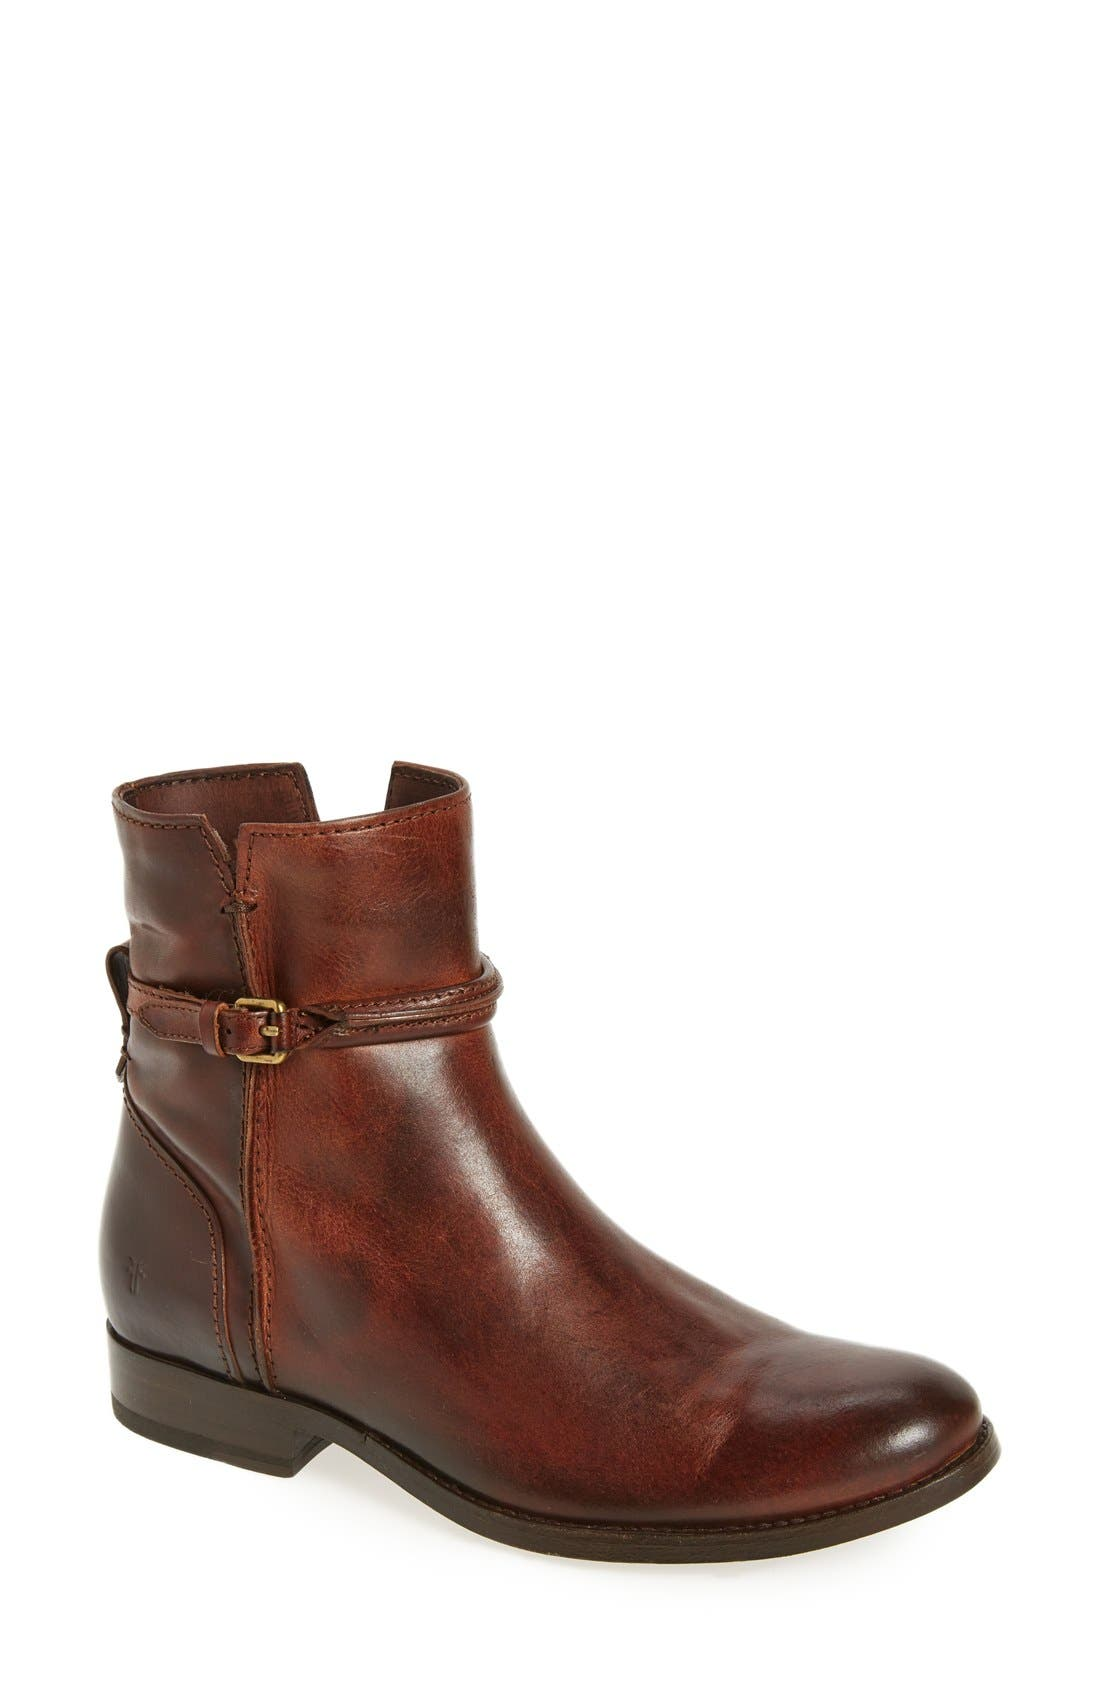 Melissa Bootie,                             Main thumbnail 1, color,                             Brown Leather